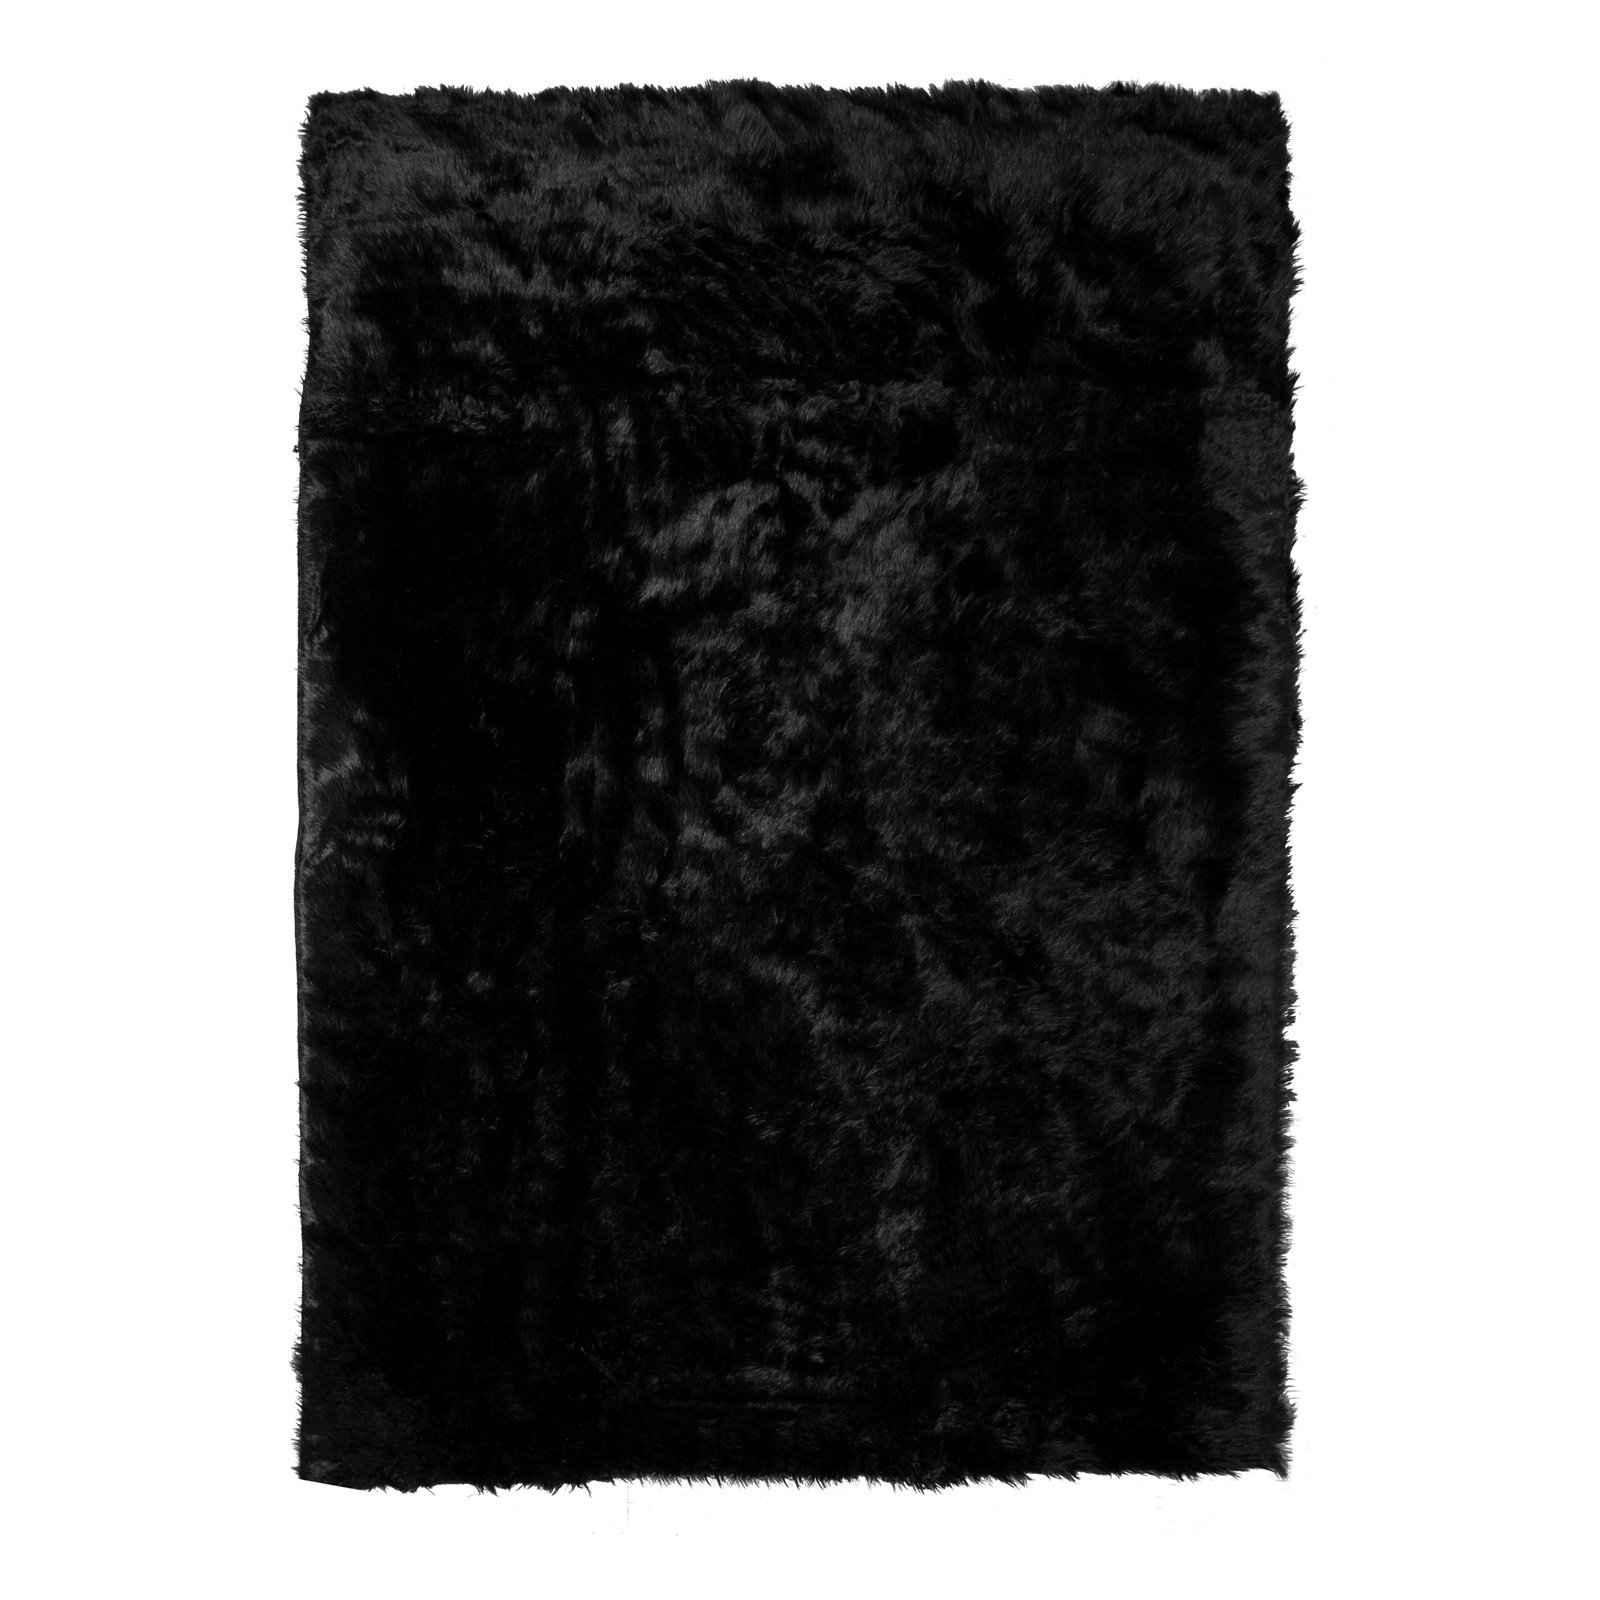 Click here to buy Ailis Faux Sheepskin Fur Area Rug Black Rectangular 5x3 by Glamour Home.